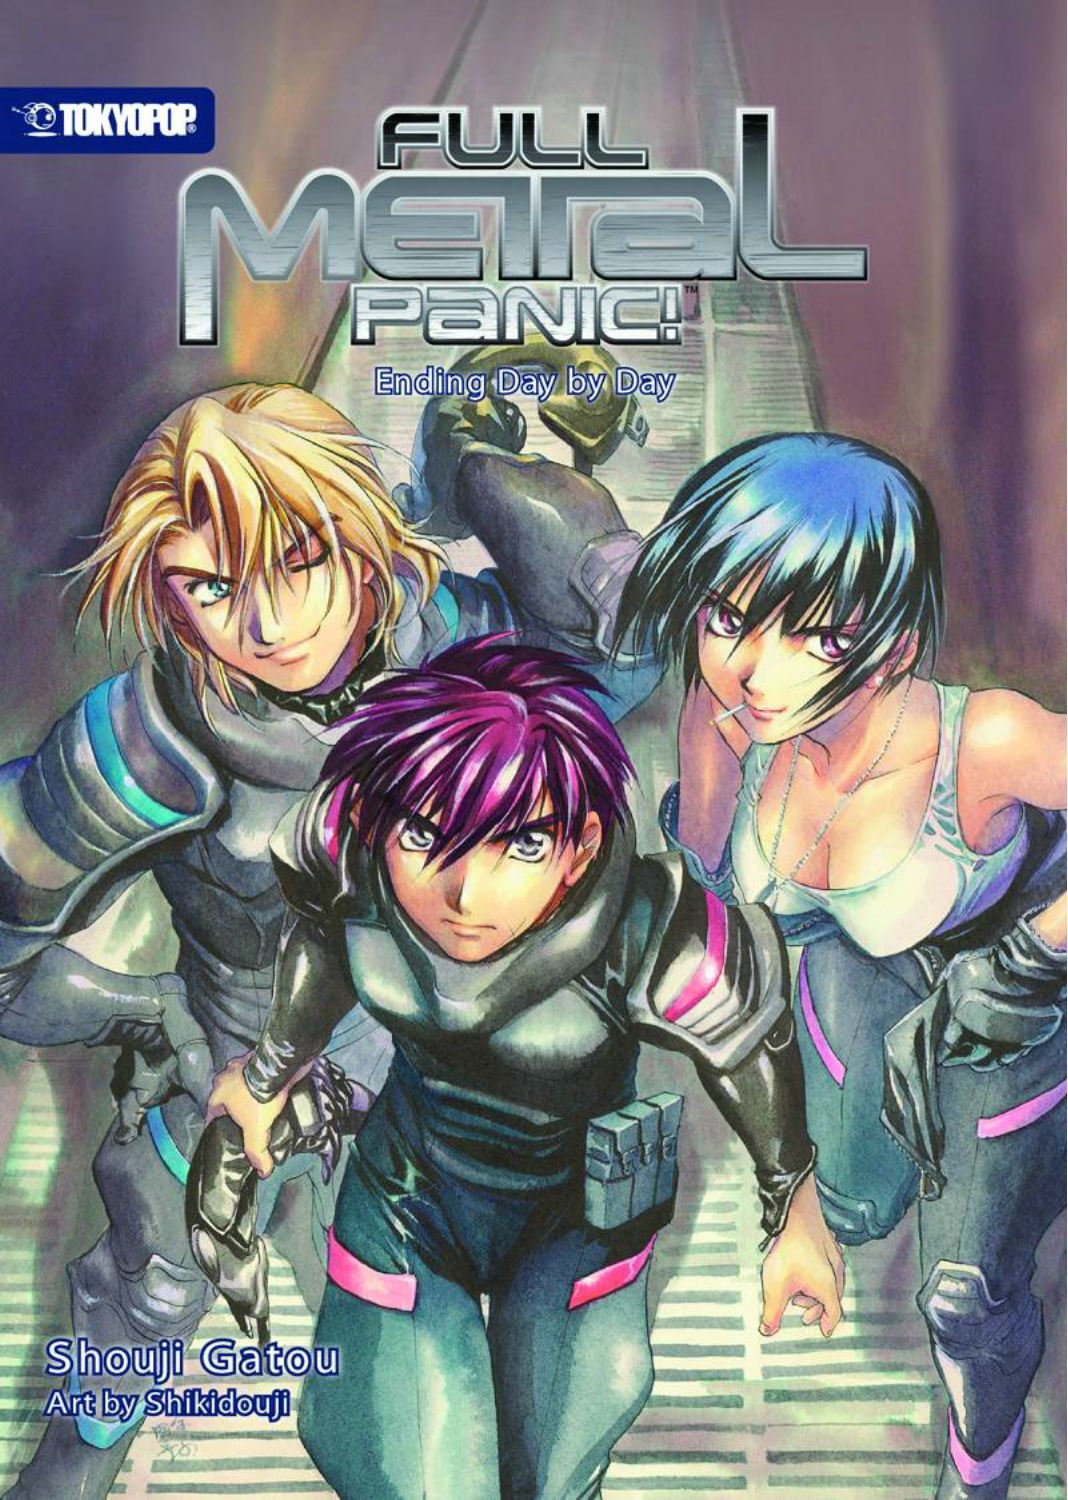 Full Metal Panic! (novel) Volume 4: Ending Day by Day -- Part 1 7 Conclusion pdf epub